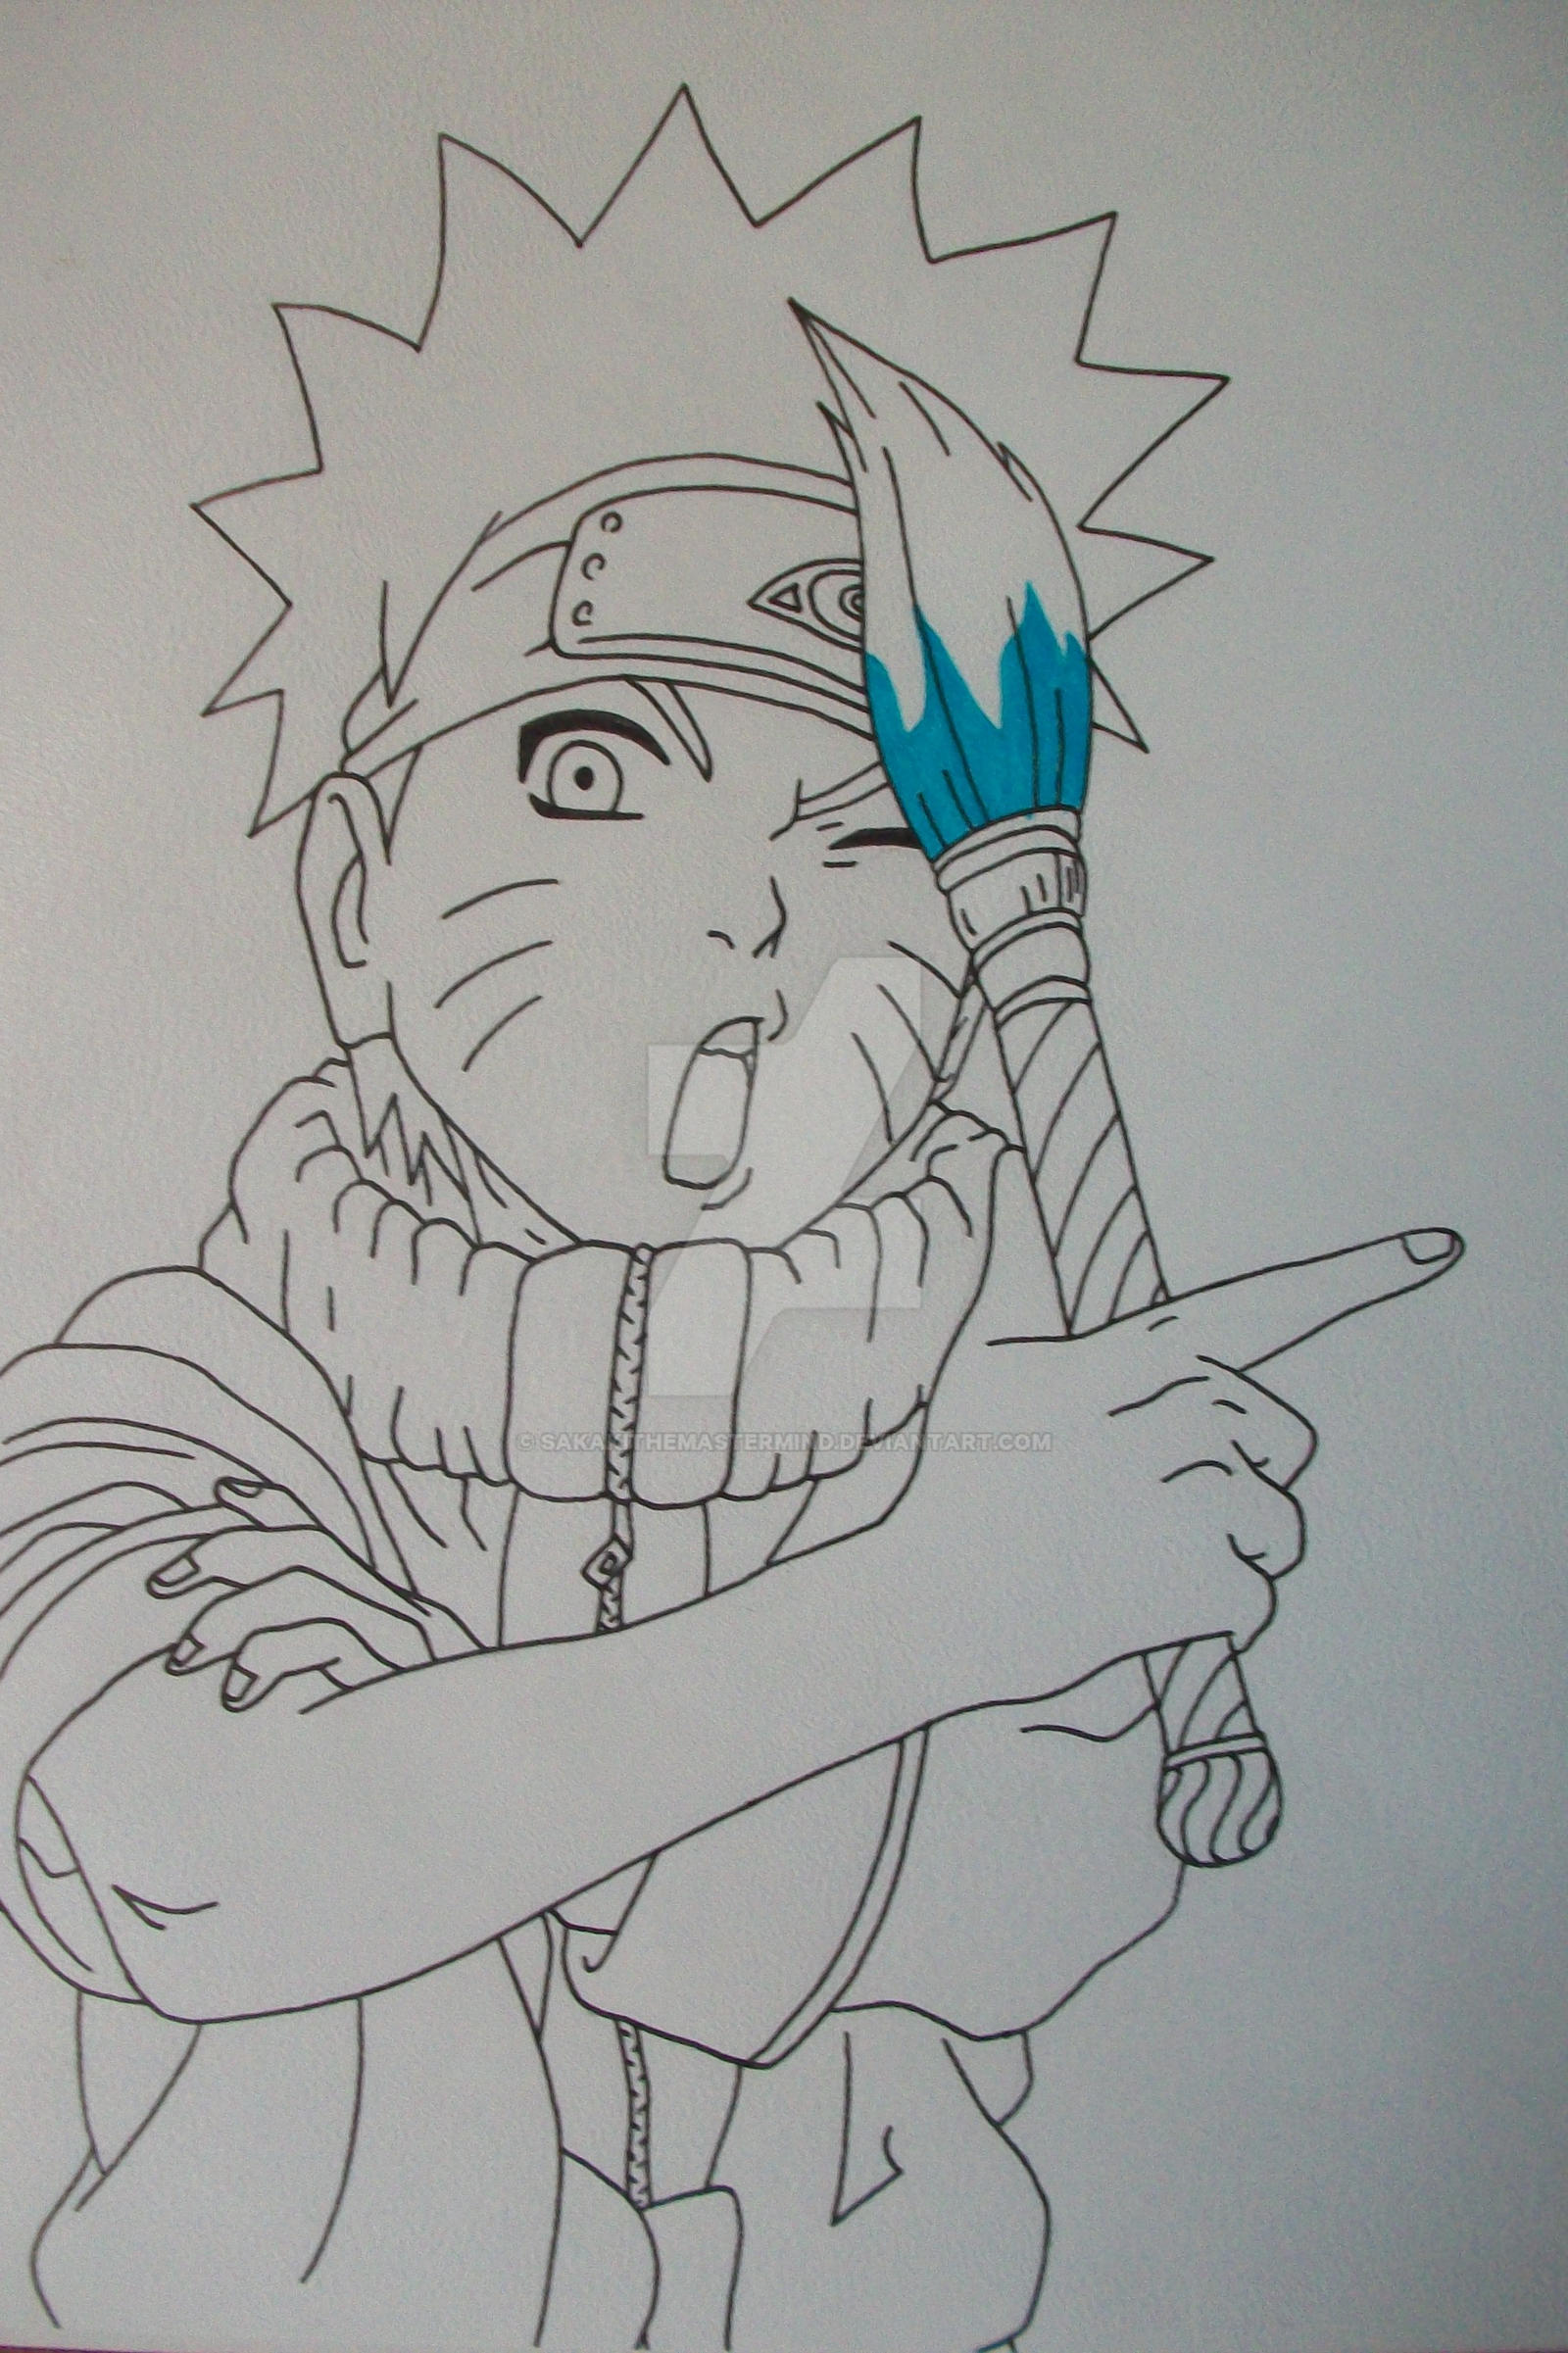 Time To Draw! Naruto Uzumaki young by SakakiTheMastermind on